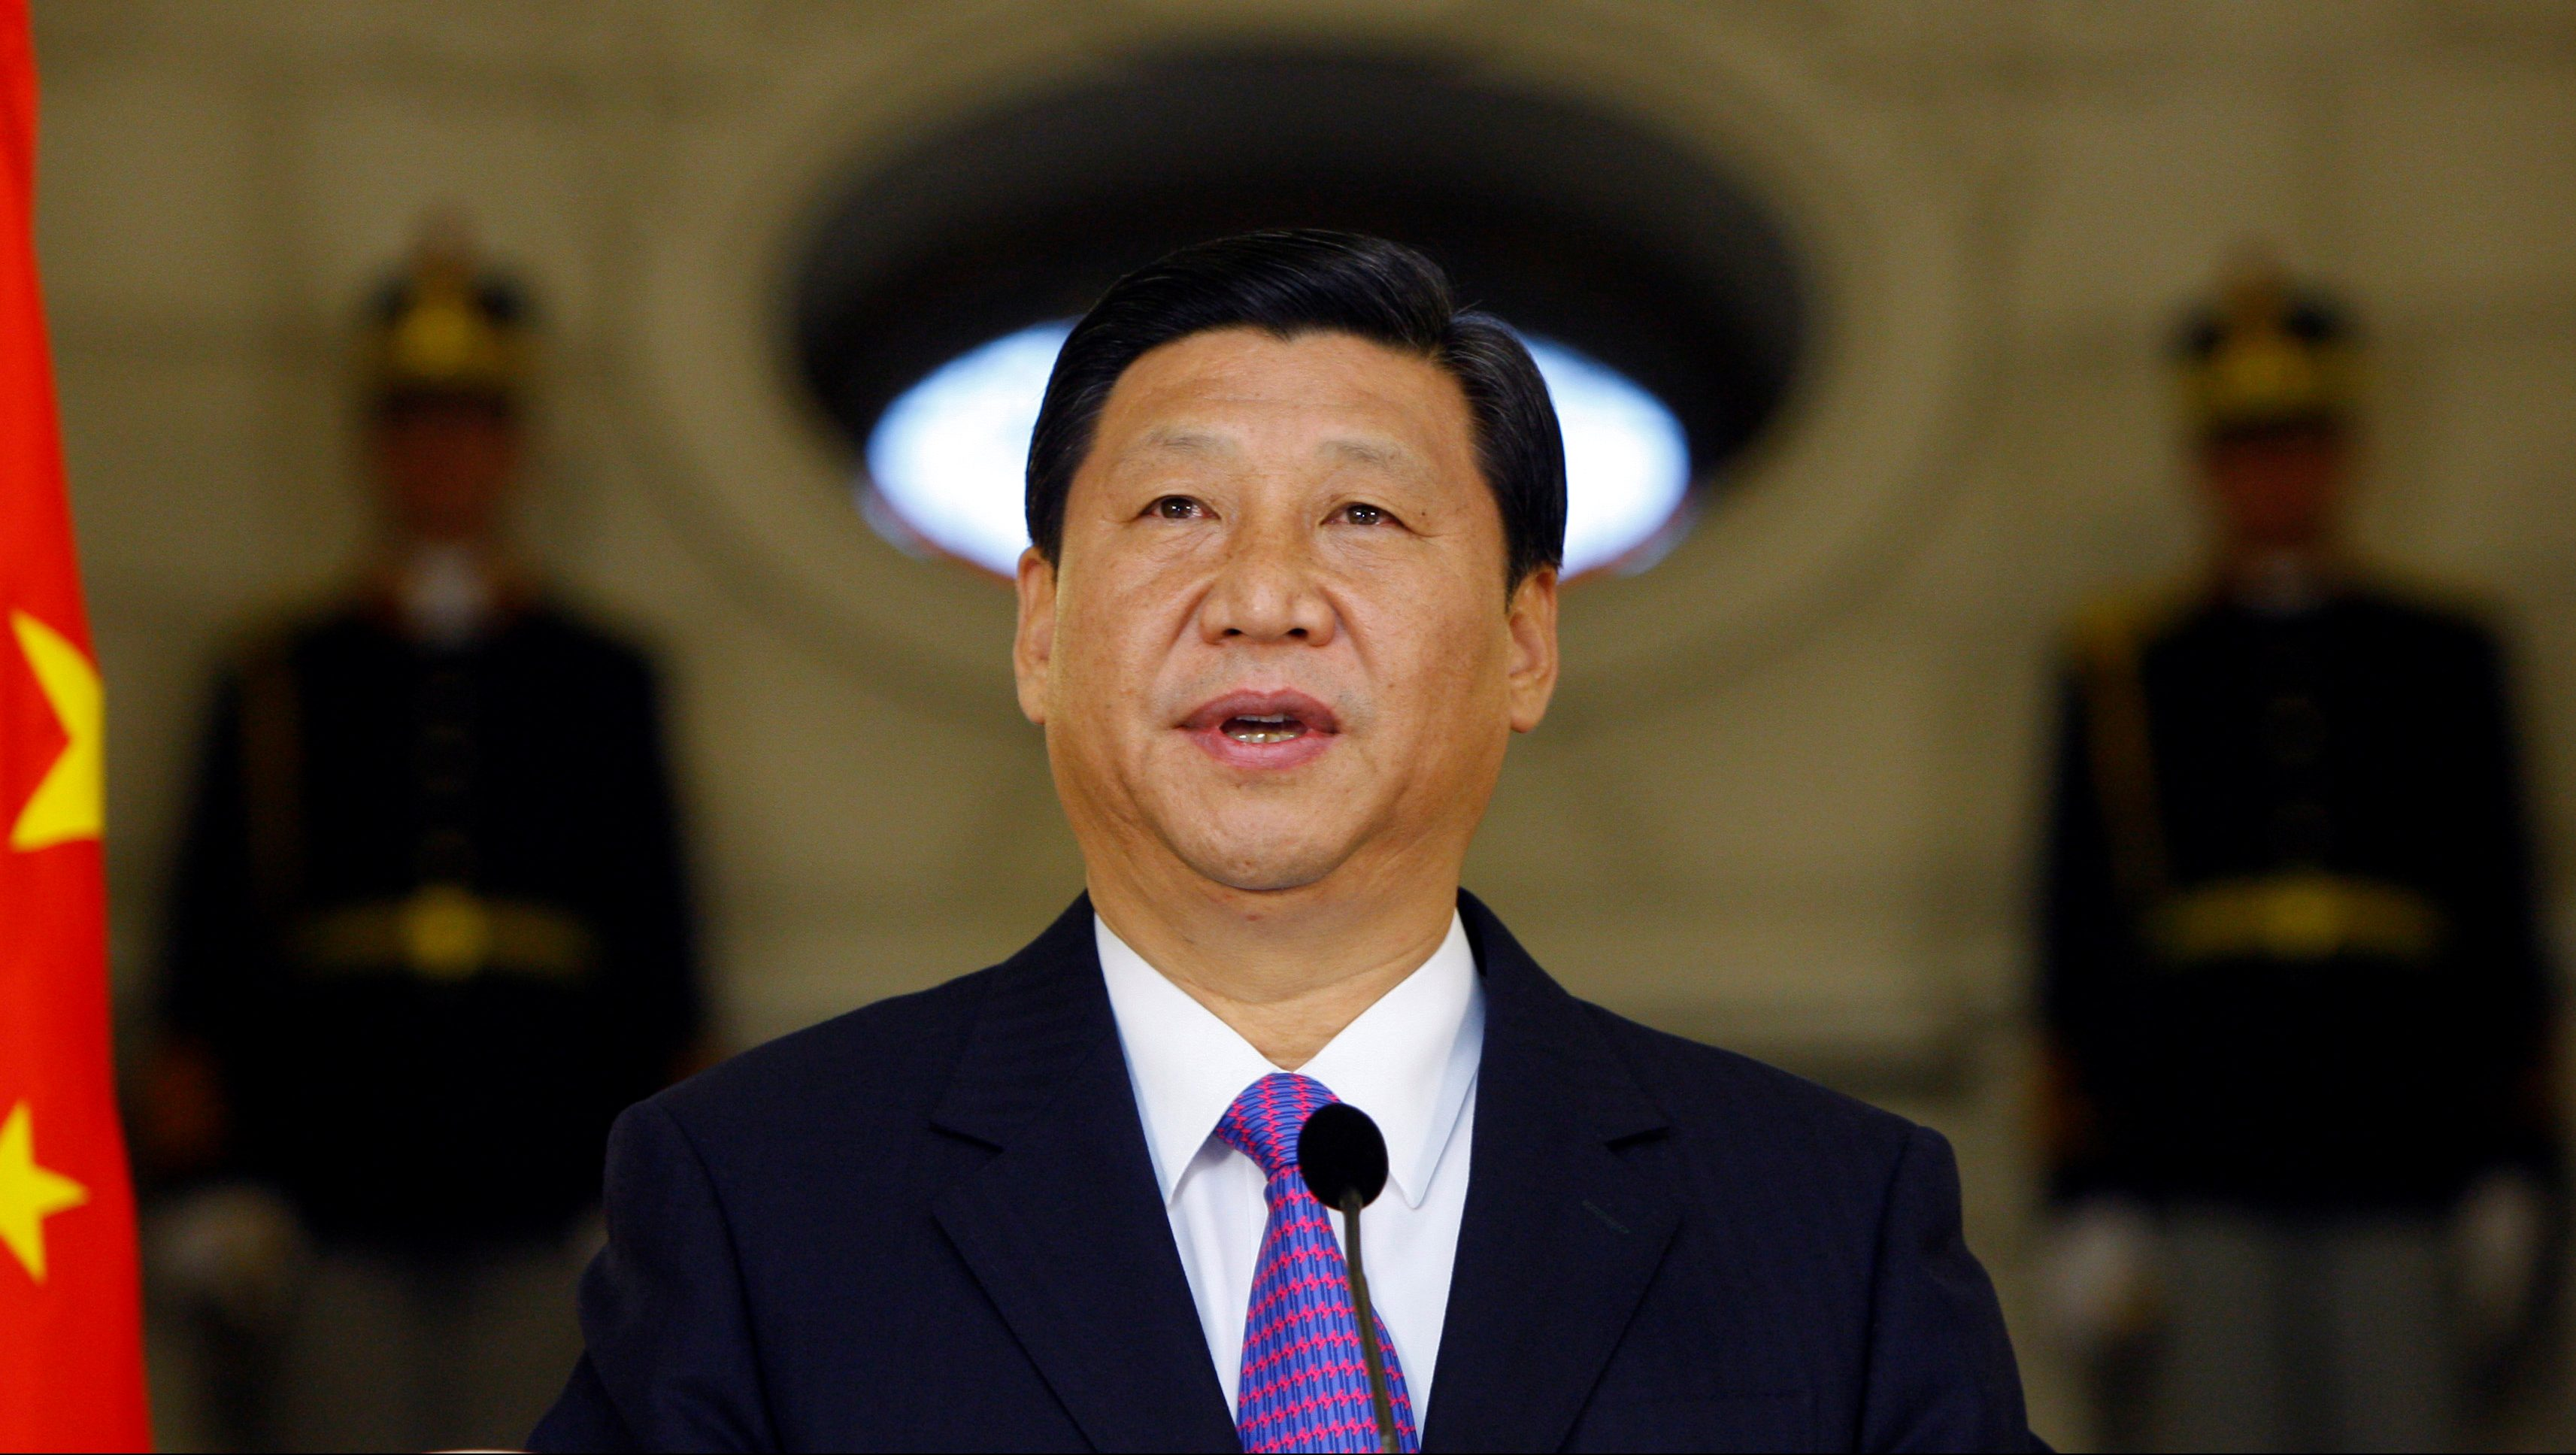 XI ANOINTED CORE LEADER